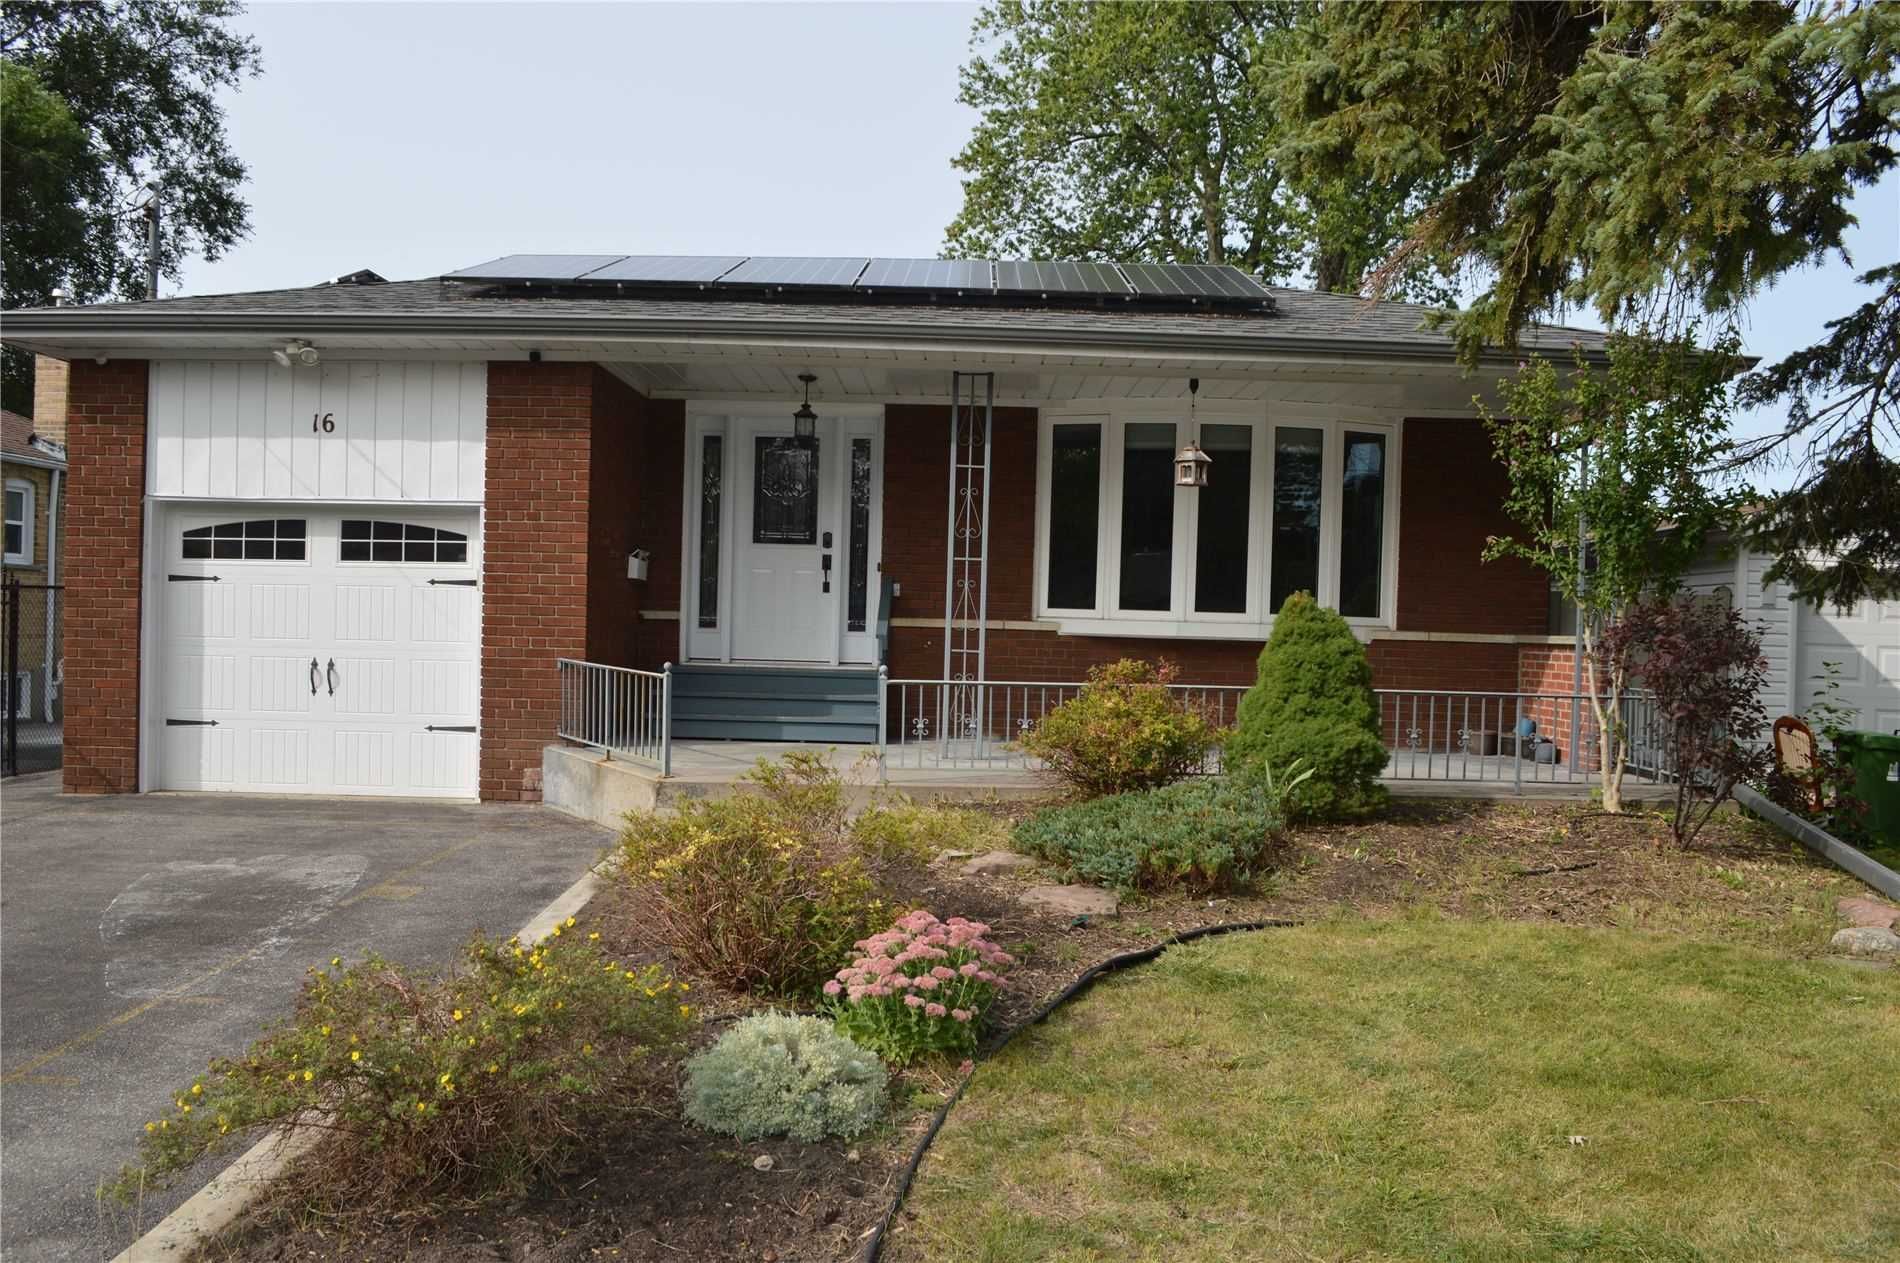 Main Photo: 16 Homestead Avenue in Toronto: West Hill House (Bungalow) for lease (Toronto E10)  : MLS®# E4911083